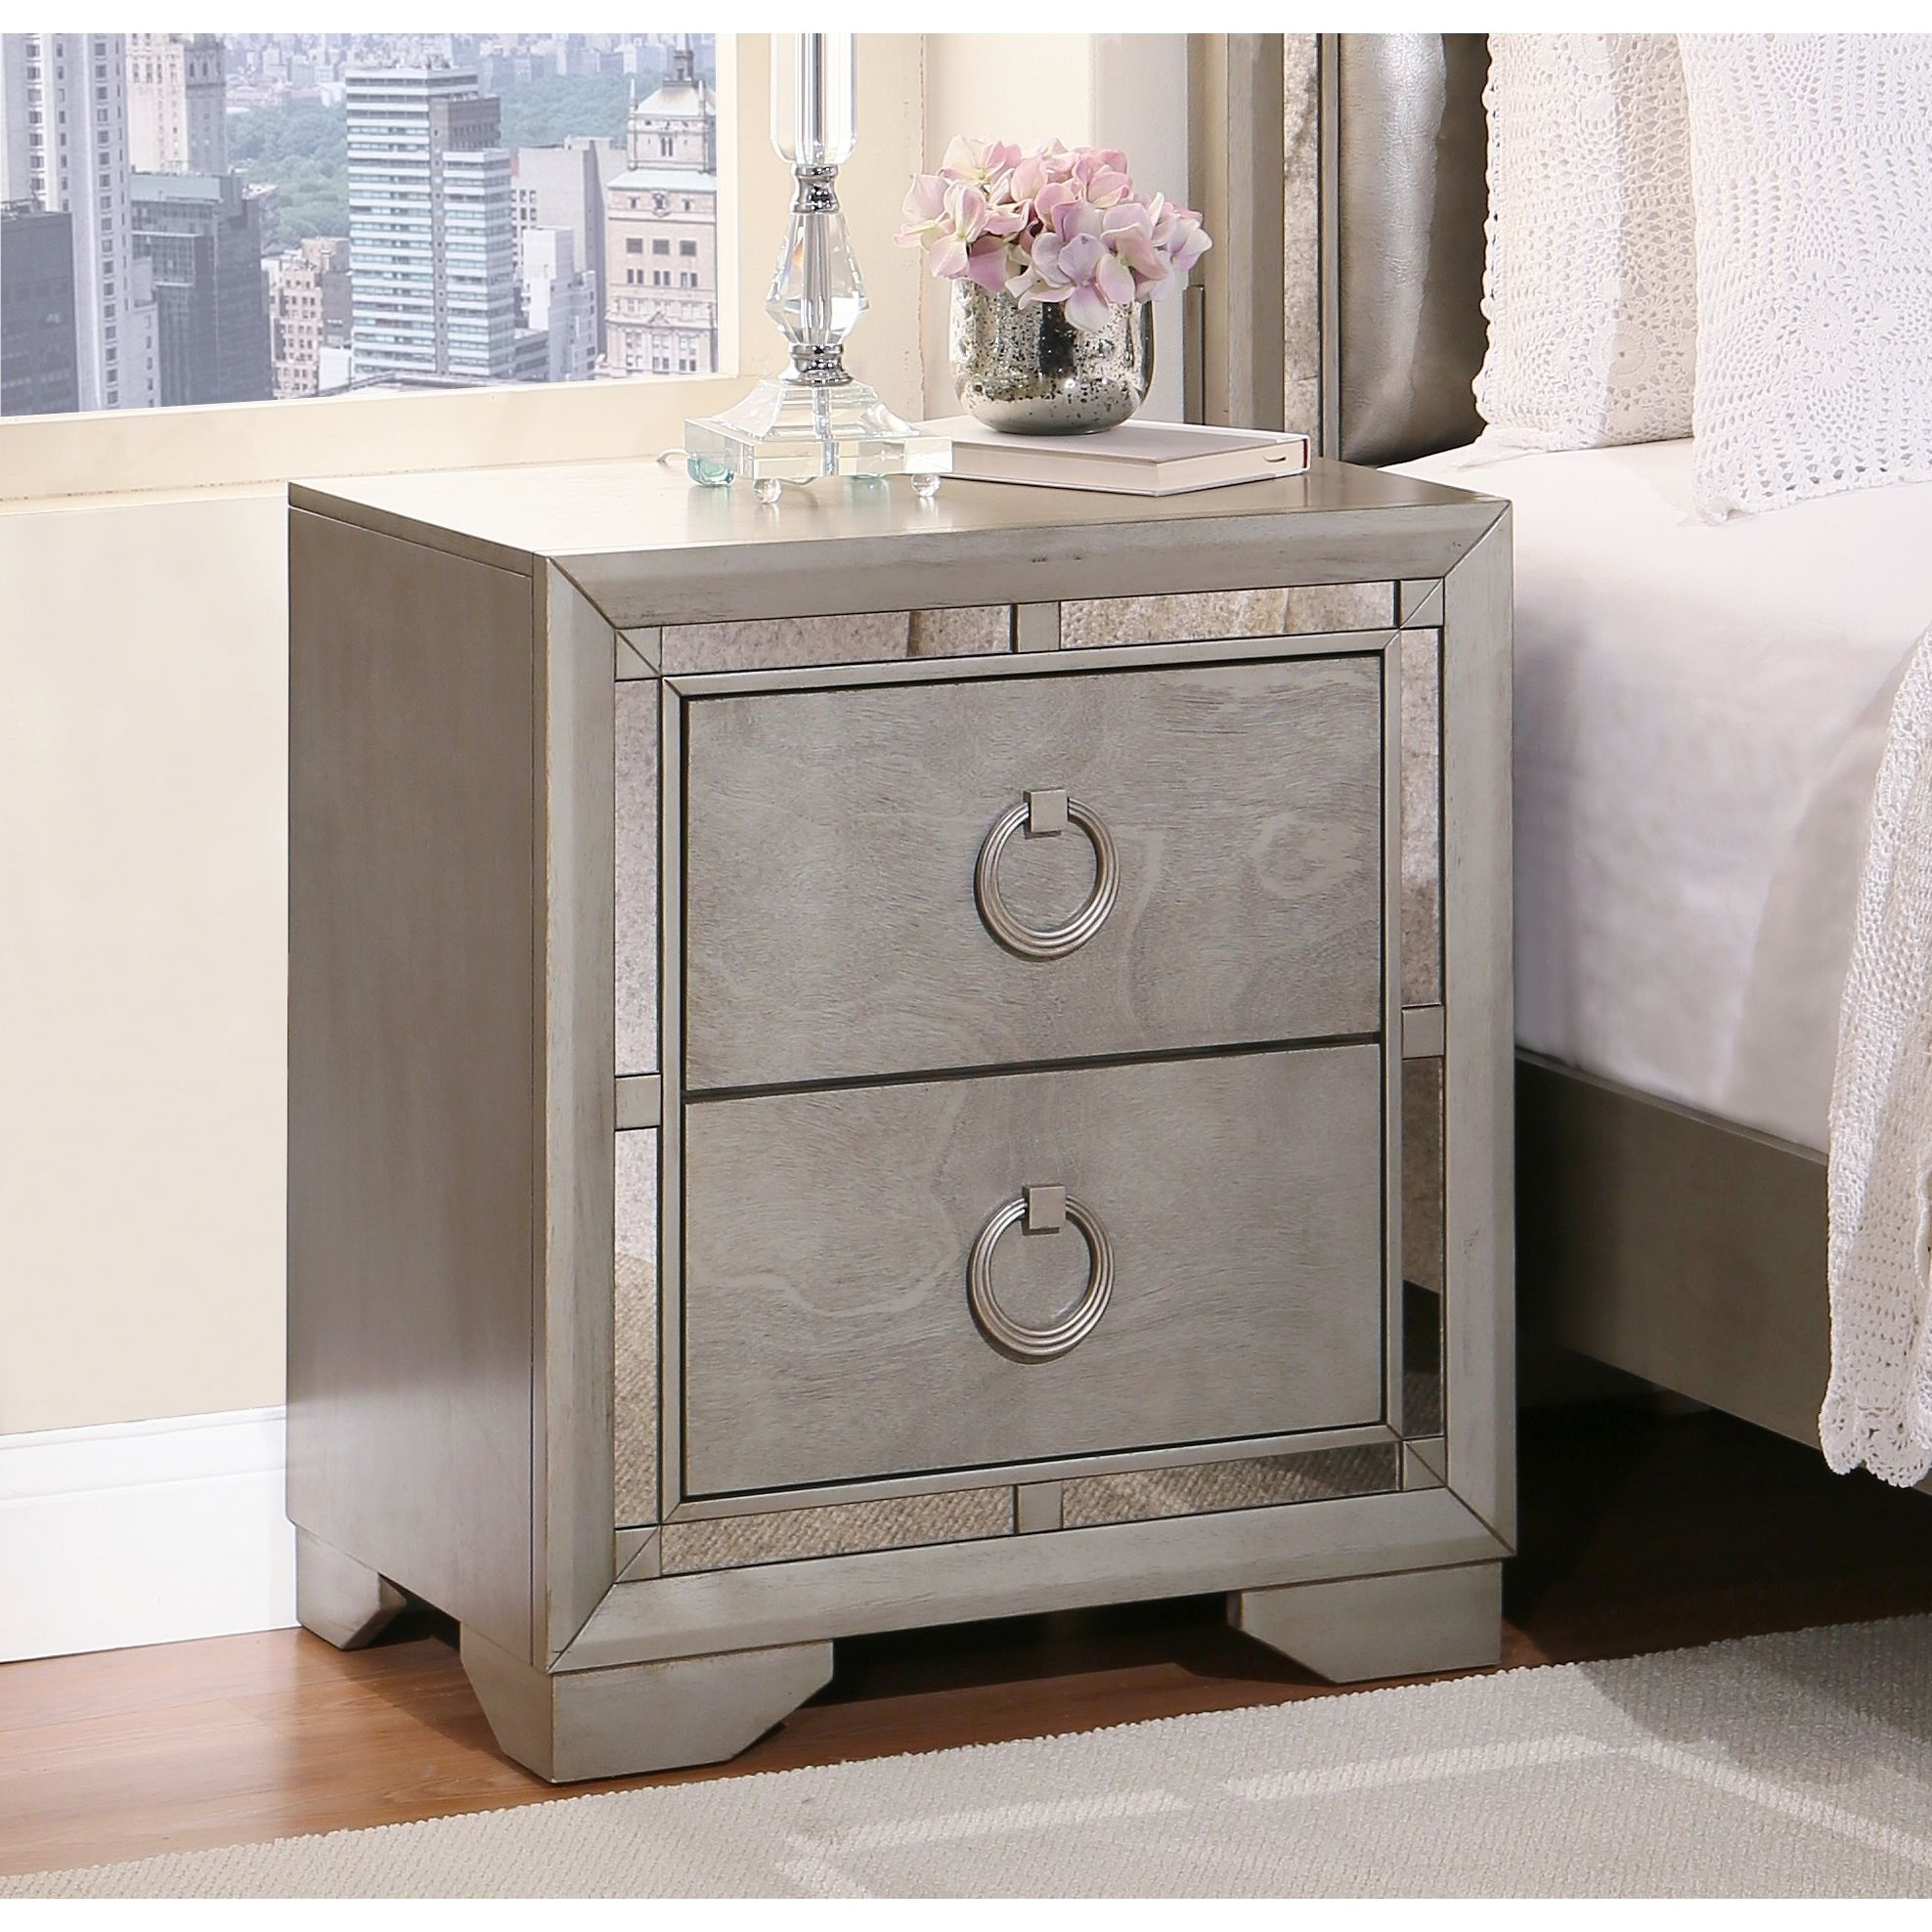 Abbyson Valentino Mirrored 2 Drawer Nightstand Antique Silver